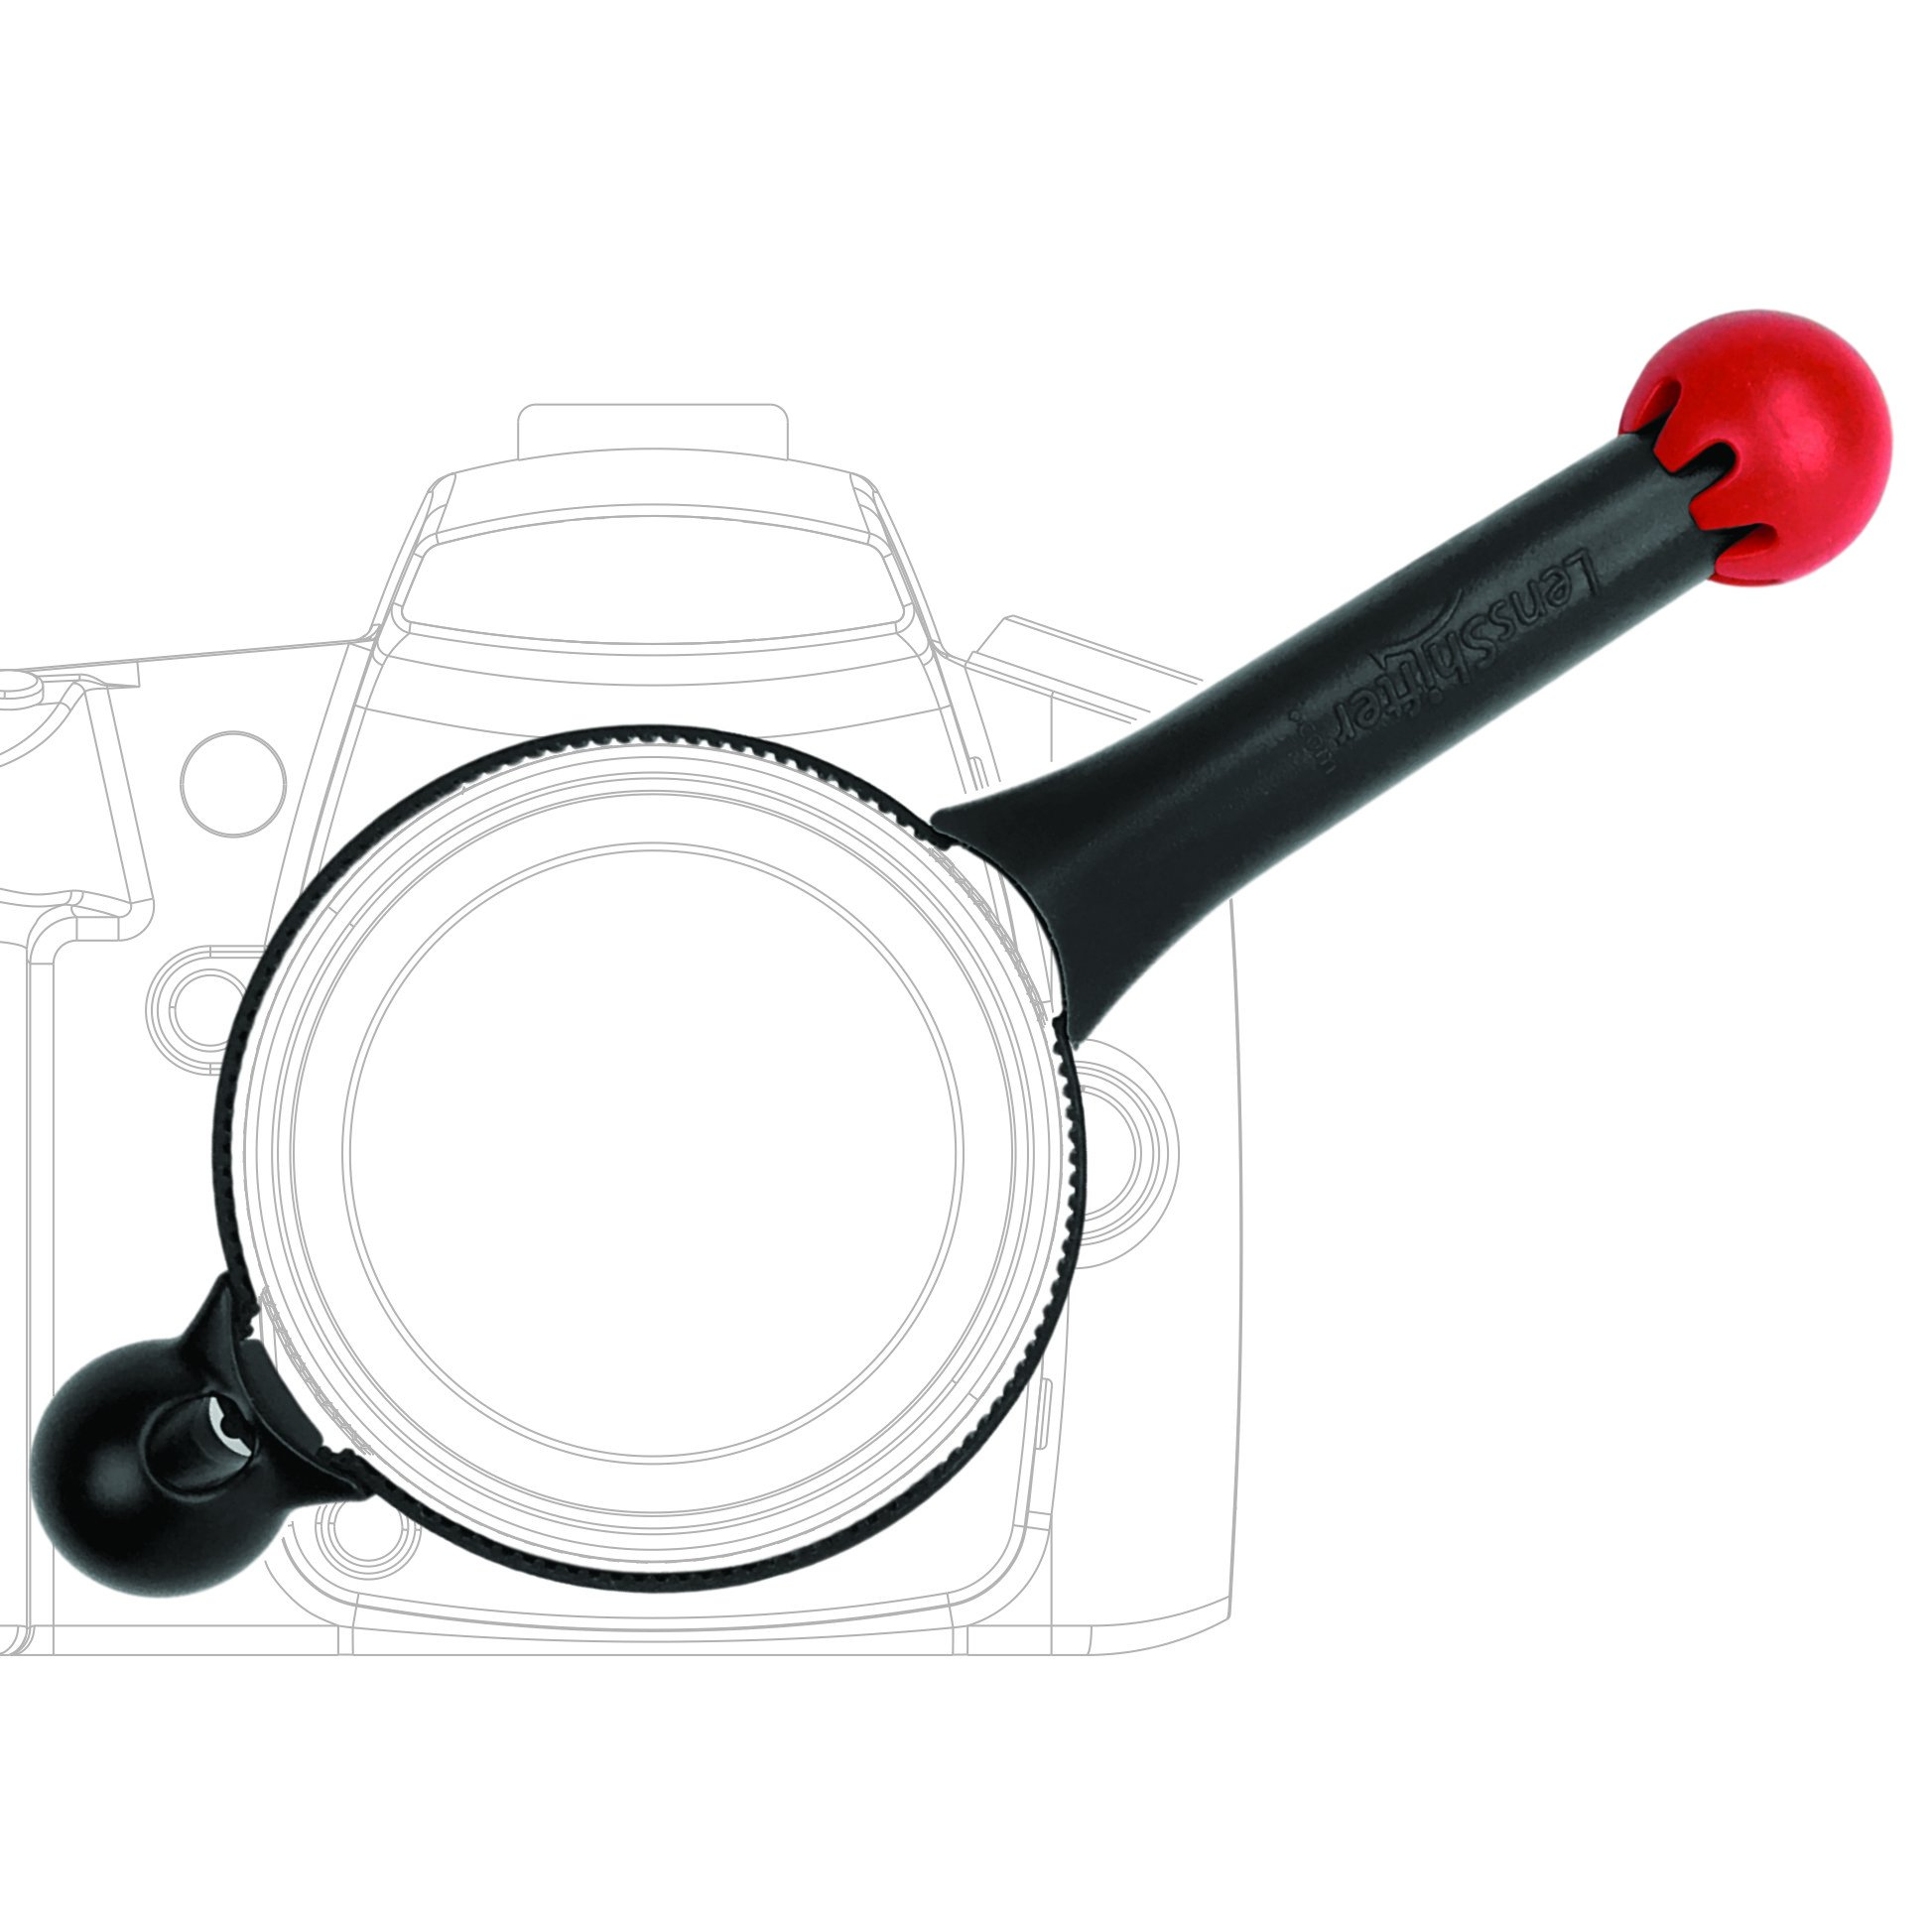 LensShifter Pro Red - Balanced Focus and Zoom Grip for DSLR and Mirrorless Camera Lens - (Red) by Lensshifter